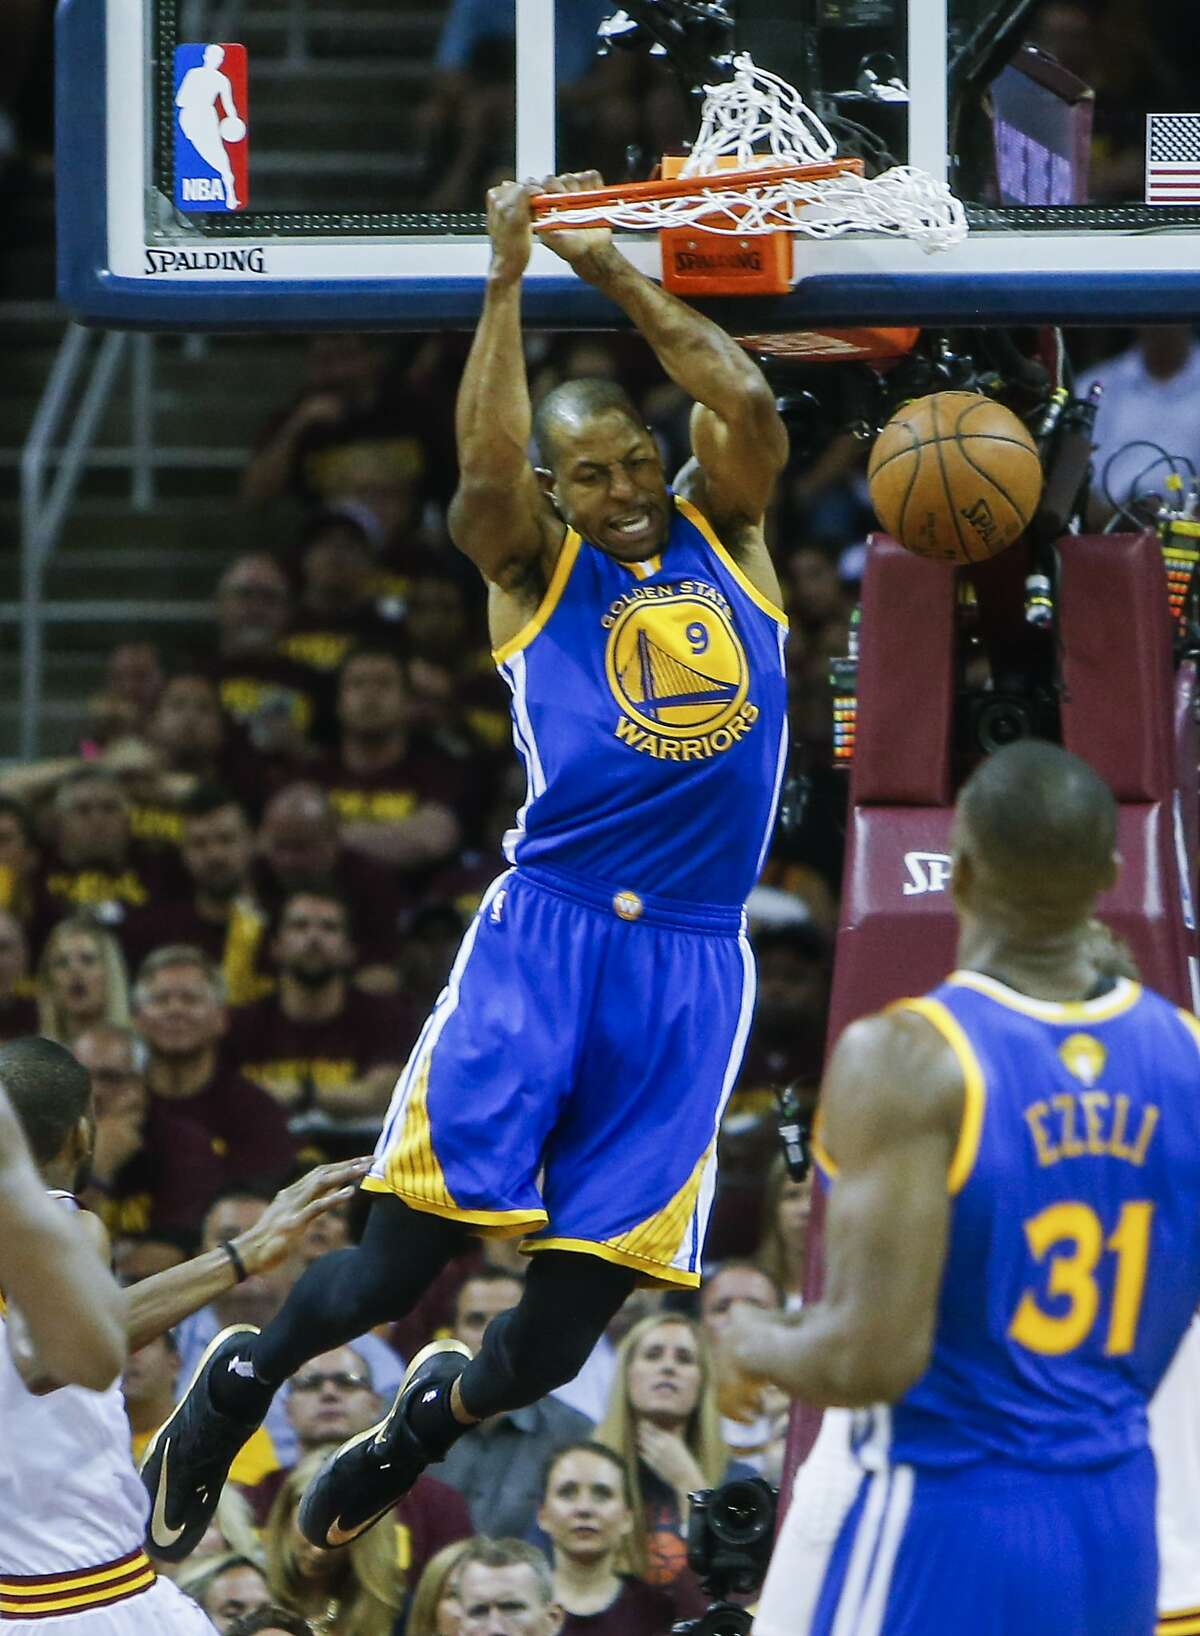 Golden State Warriors' Andre Iguodala dunks the ball in the third period during Game 6 of The NBA Finals between the Golden State Warriors and Cleveland Cavaliers at The Quicken Loans Arena on Tuesday, June 16, 2015 in Cleveland, Ohio.